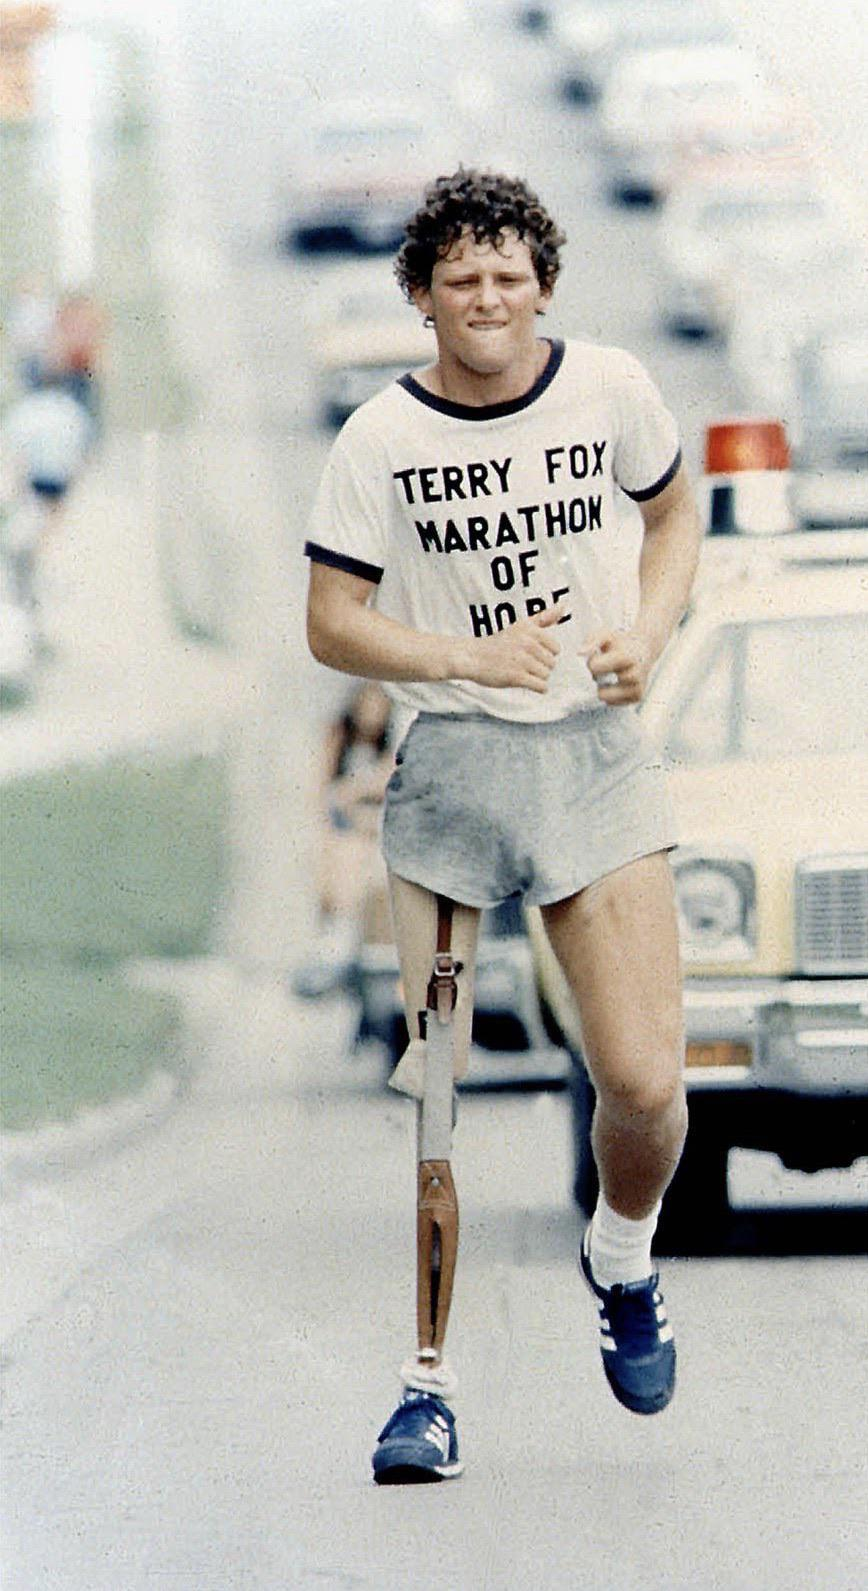 [Image] Terry Fox who 40 years ago, ran 3,339 miles across Canada before dying of cancer at the age of 21.